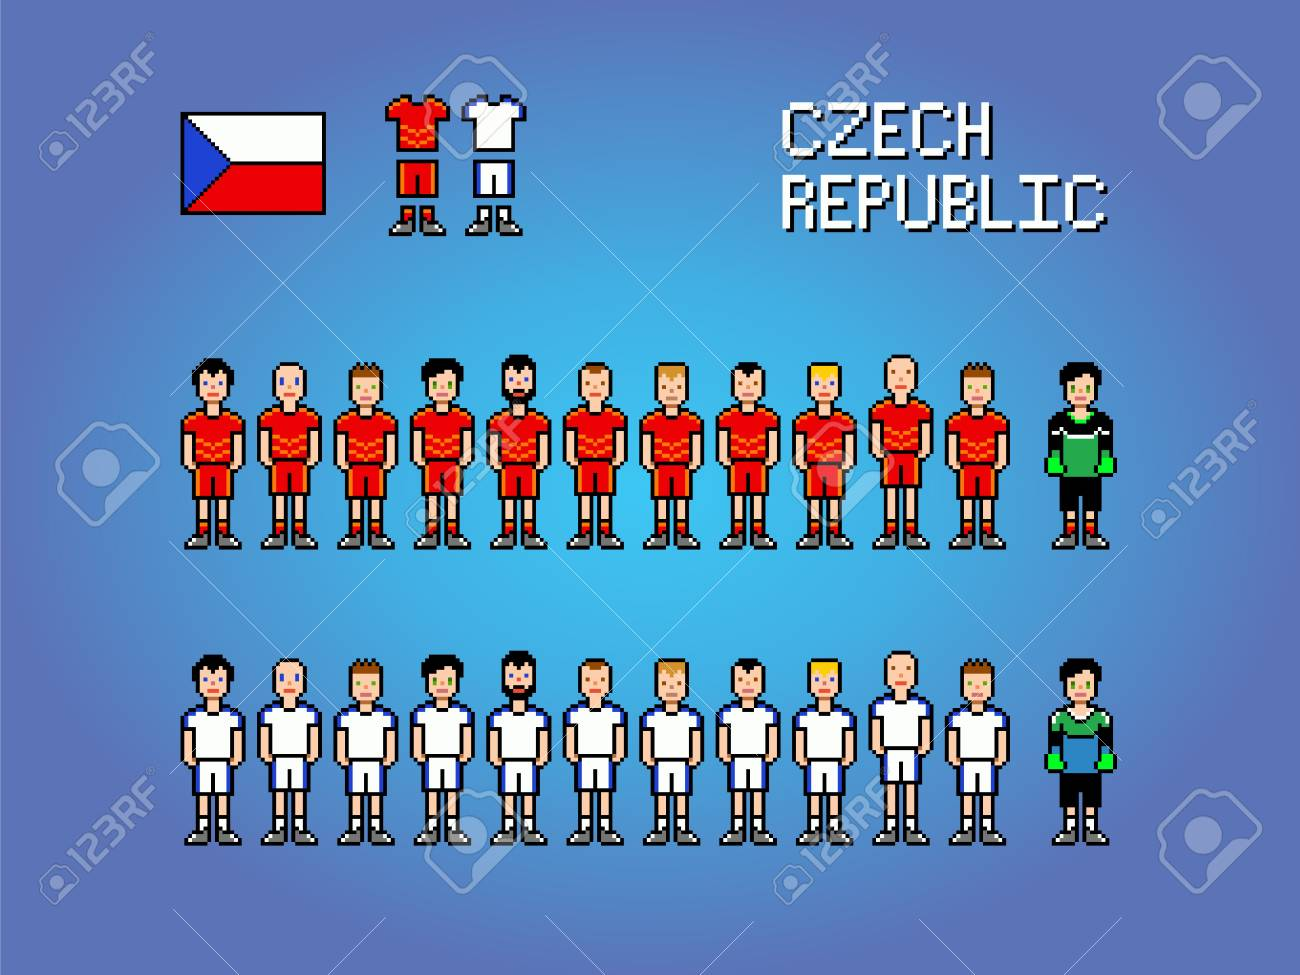 Czech Republic Football Soccer Player Uniform Pixel Art Game